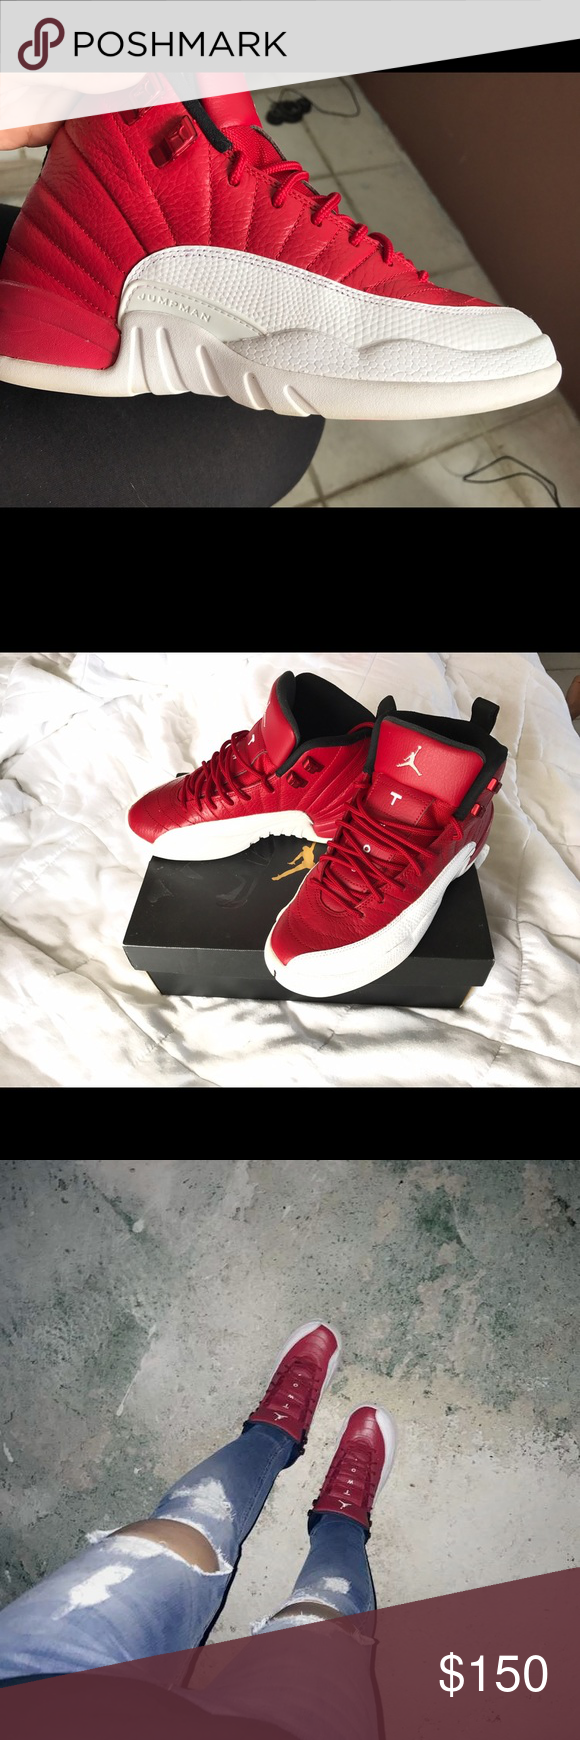 on sale c43c2 90f8f Low price ‼️Jordans 12 gym red 6 kids size for women is a 8 ...